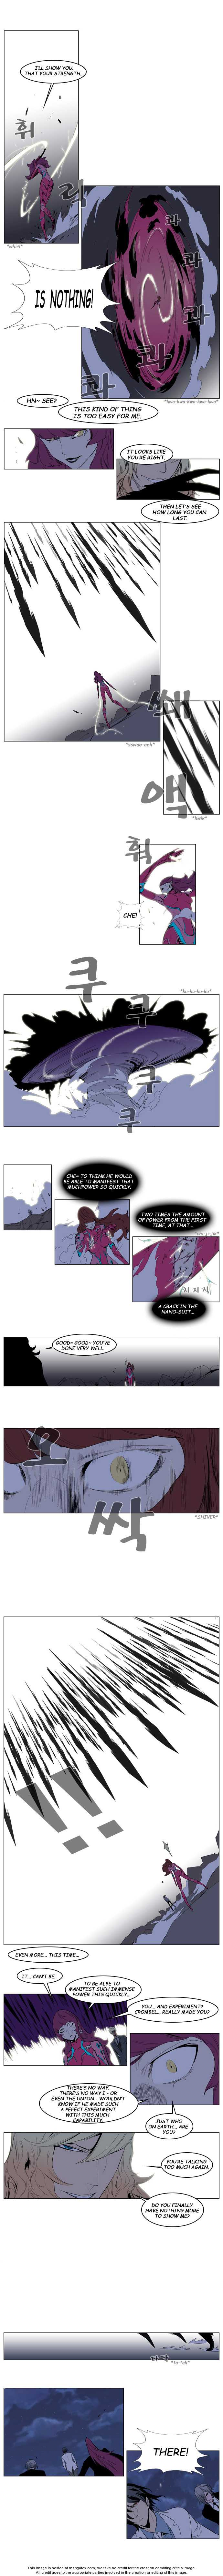 Noblesse 150 Page 3